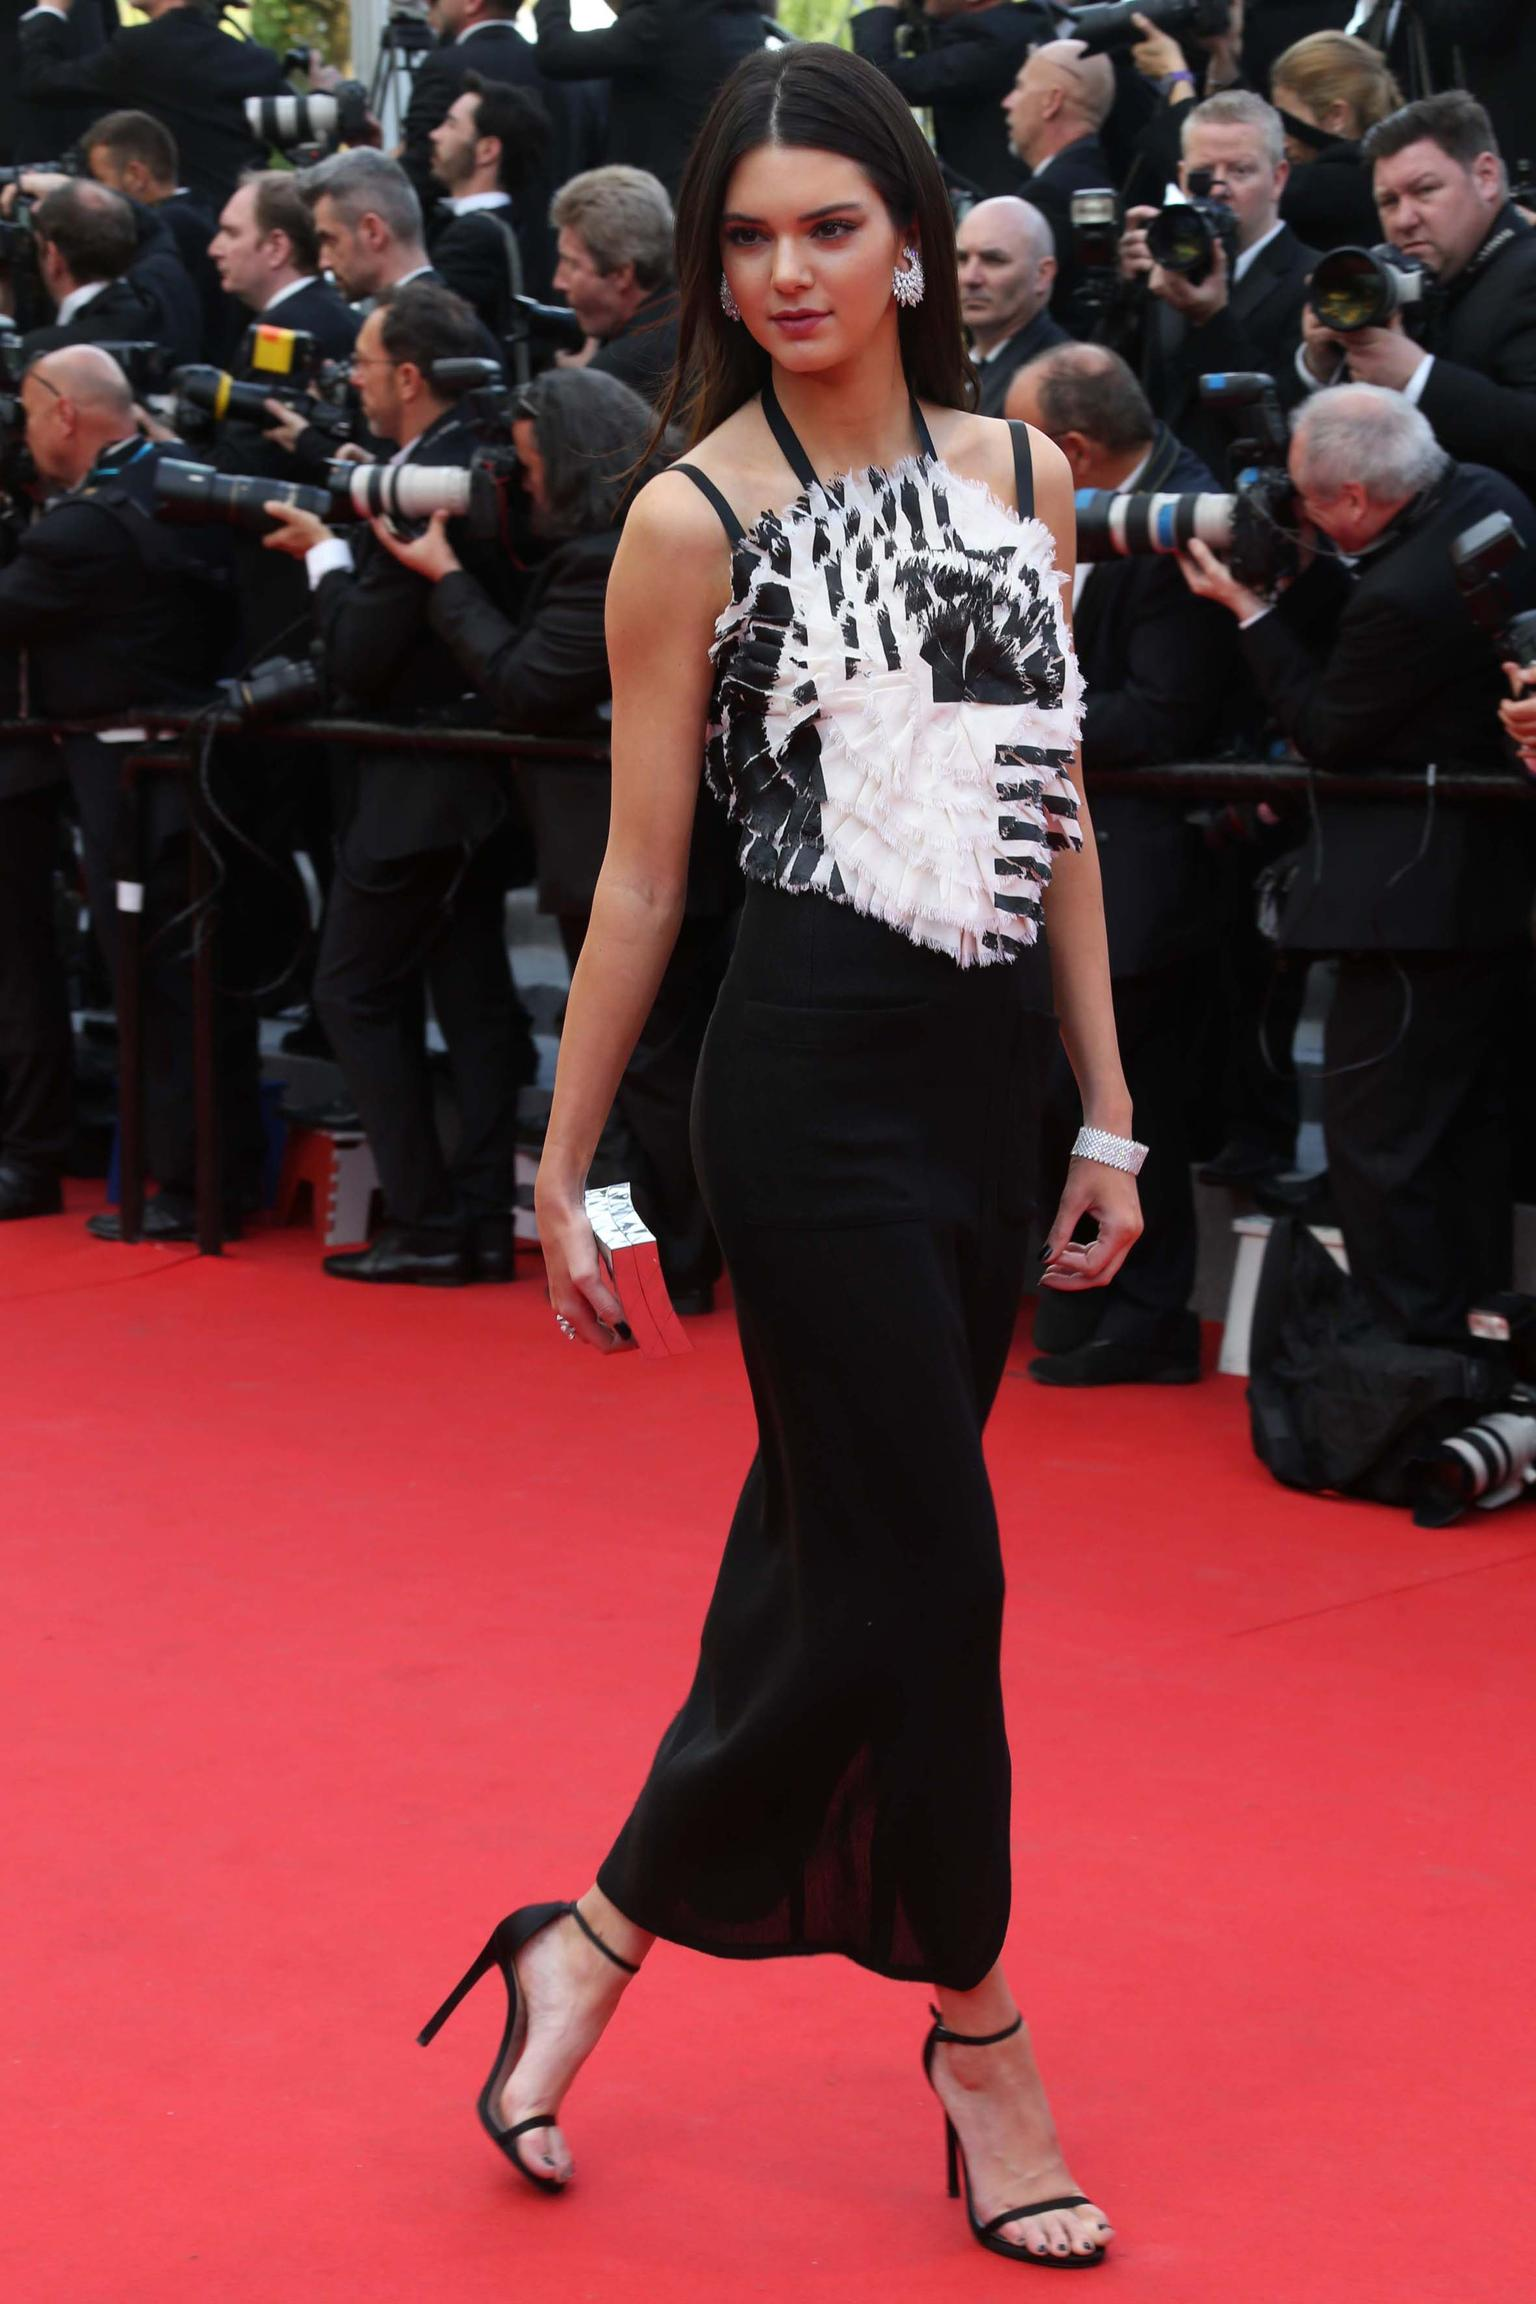 Monochrome dresses dominated the red carpet on day one of the Cannes Film Festival. Model Kendall Jenner paired hers with marquise-cut white diamond cluster earrings, a white diamond cuff and diamond rings, all by Chopard